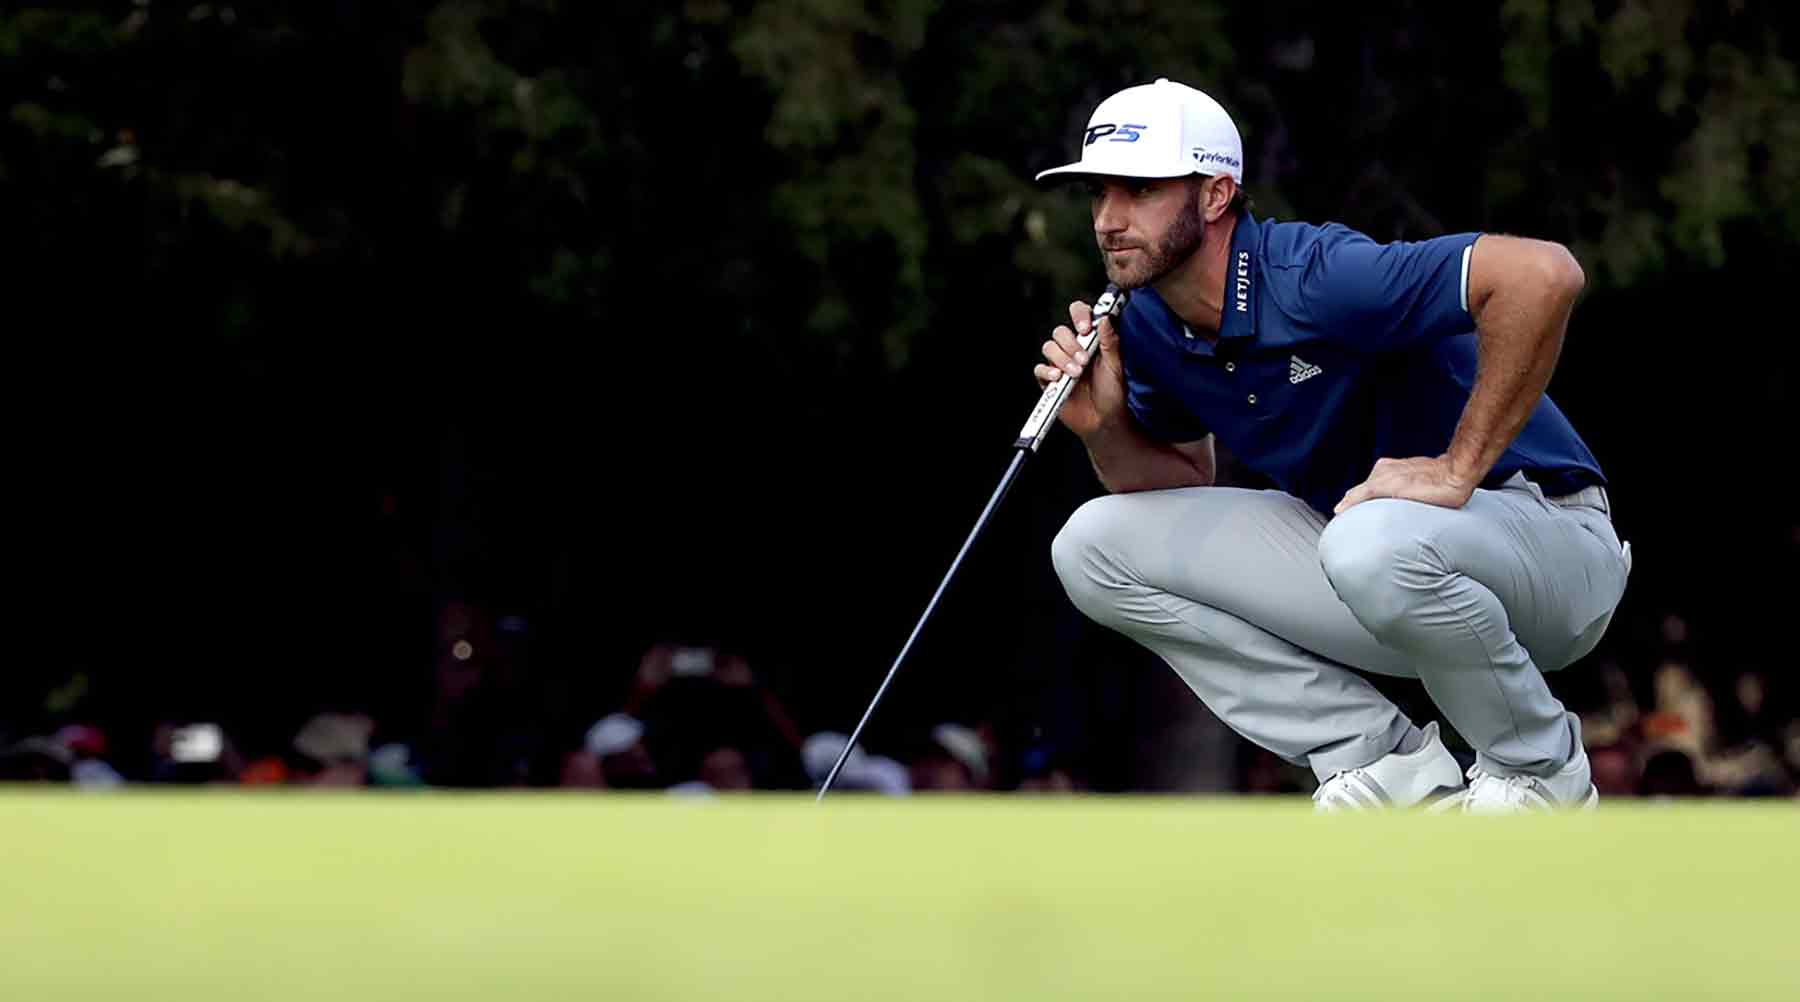 Dustin Johnson missed several short putts last week, but that doesn't tell the whole story.